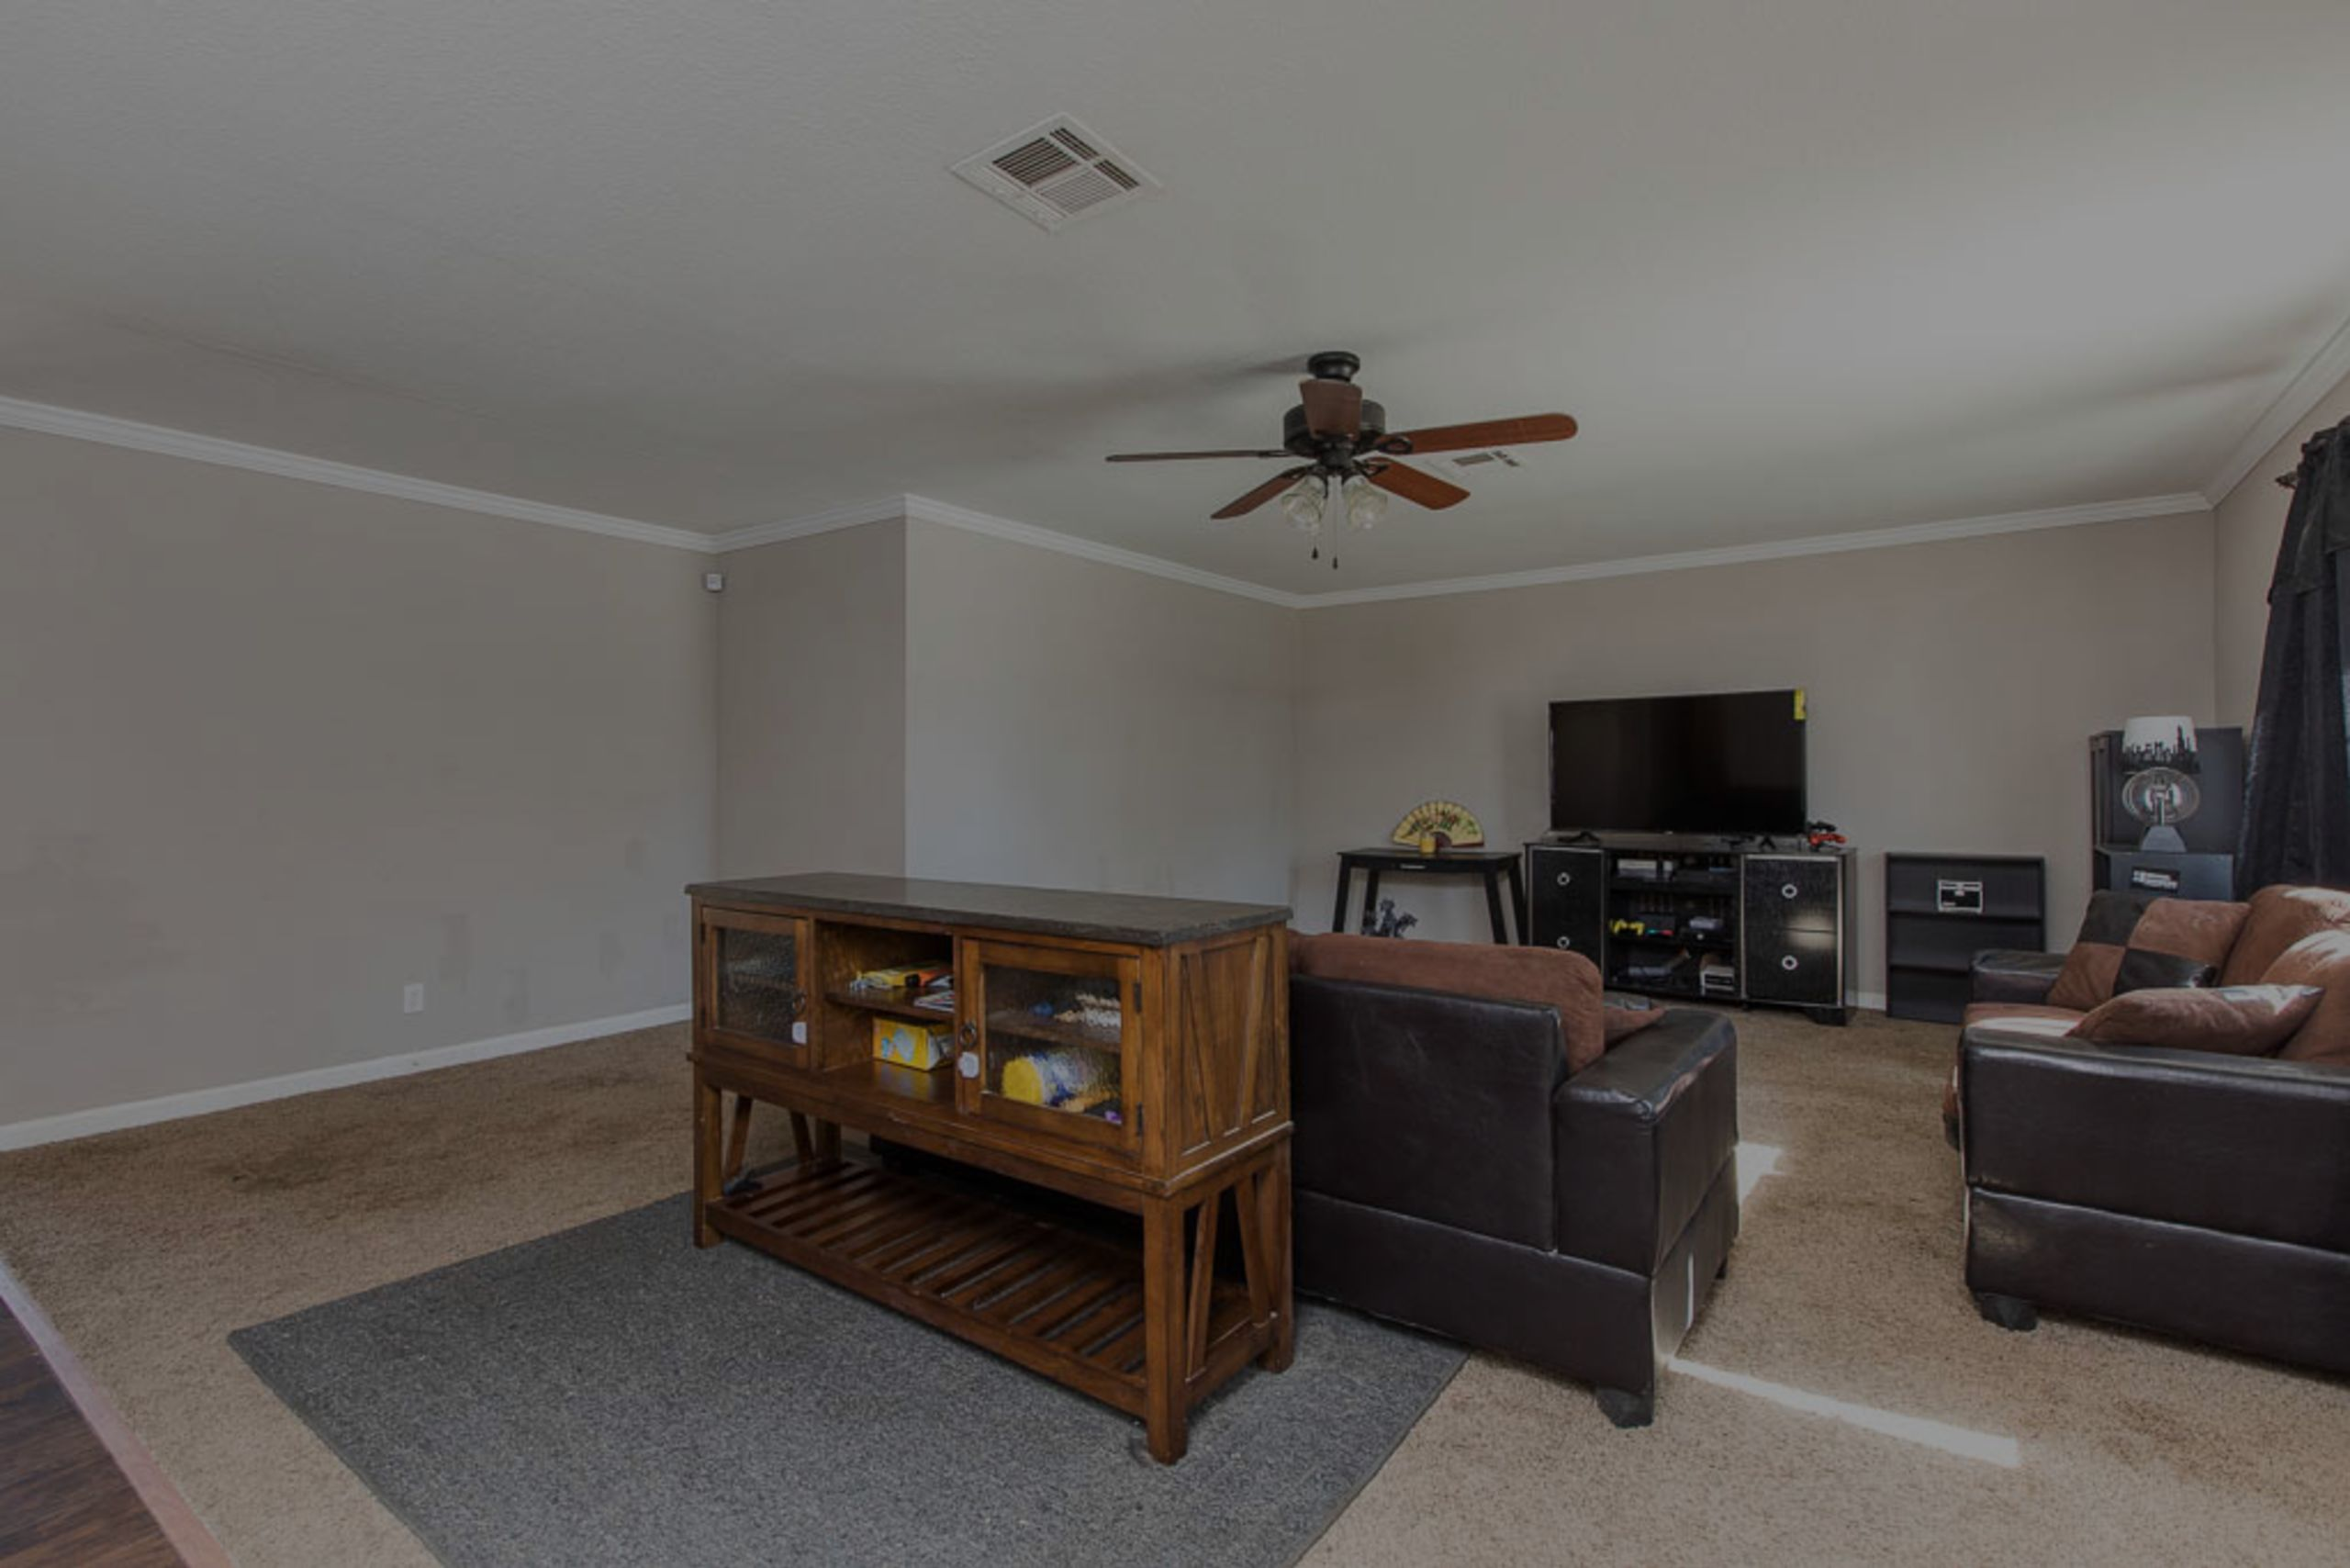 43741 Beech Ave – No More Renting!